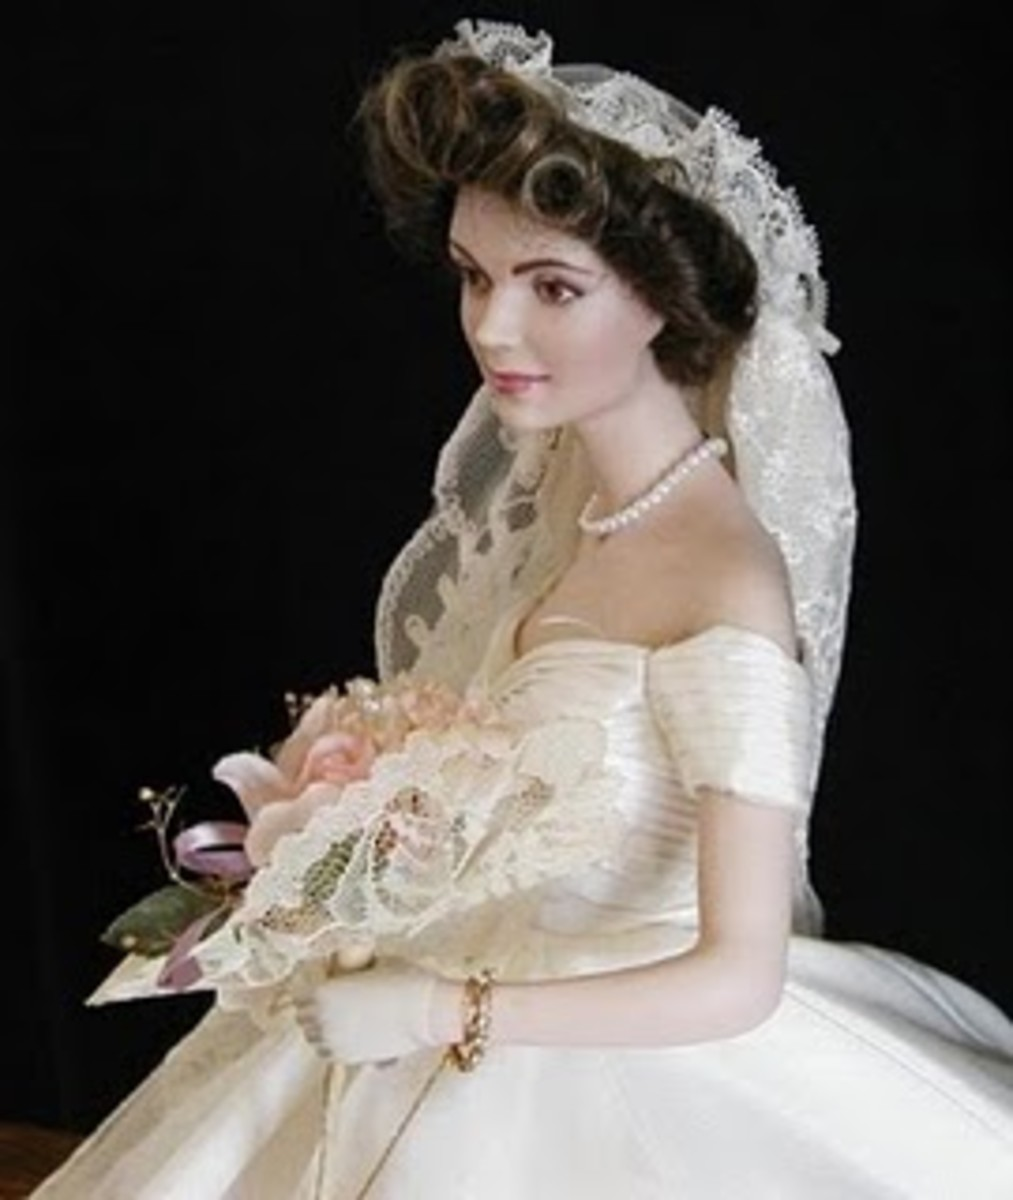 Jacqueline kennedy jacqueline kennedy wedding dress jacqueline kennedy wedding dress junglespirit Image collections